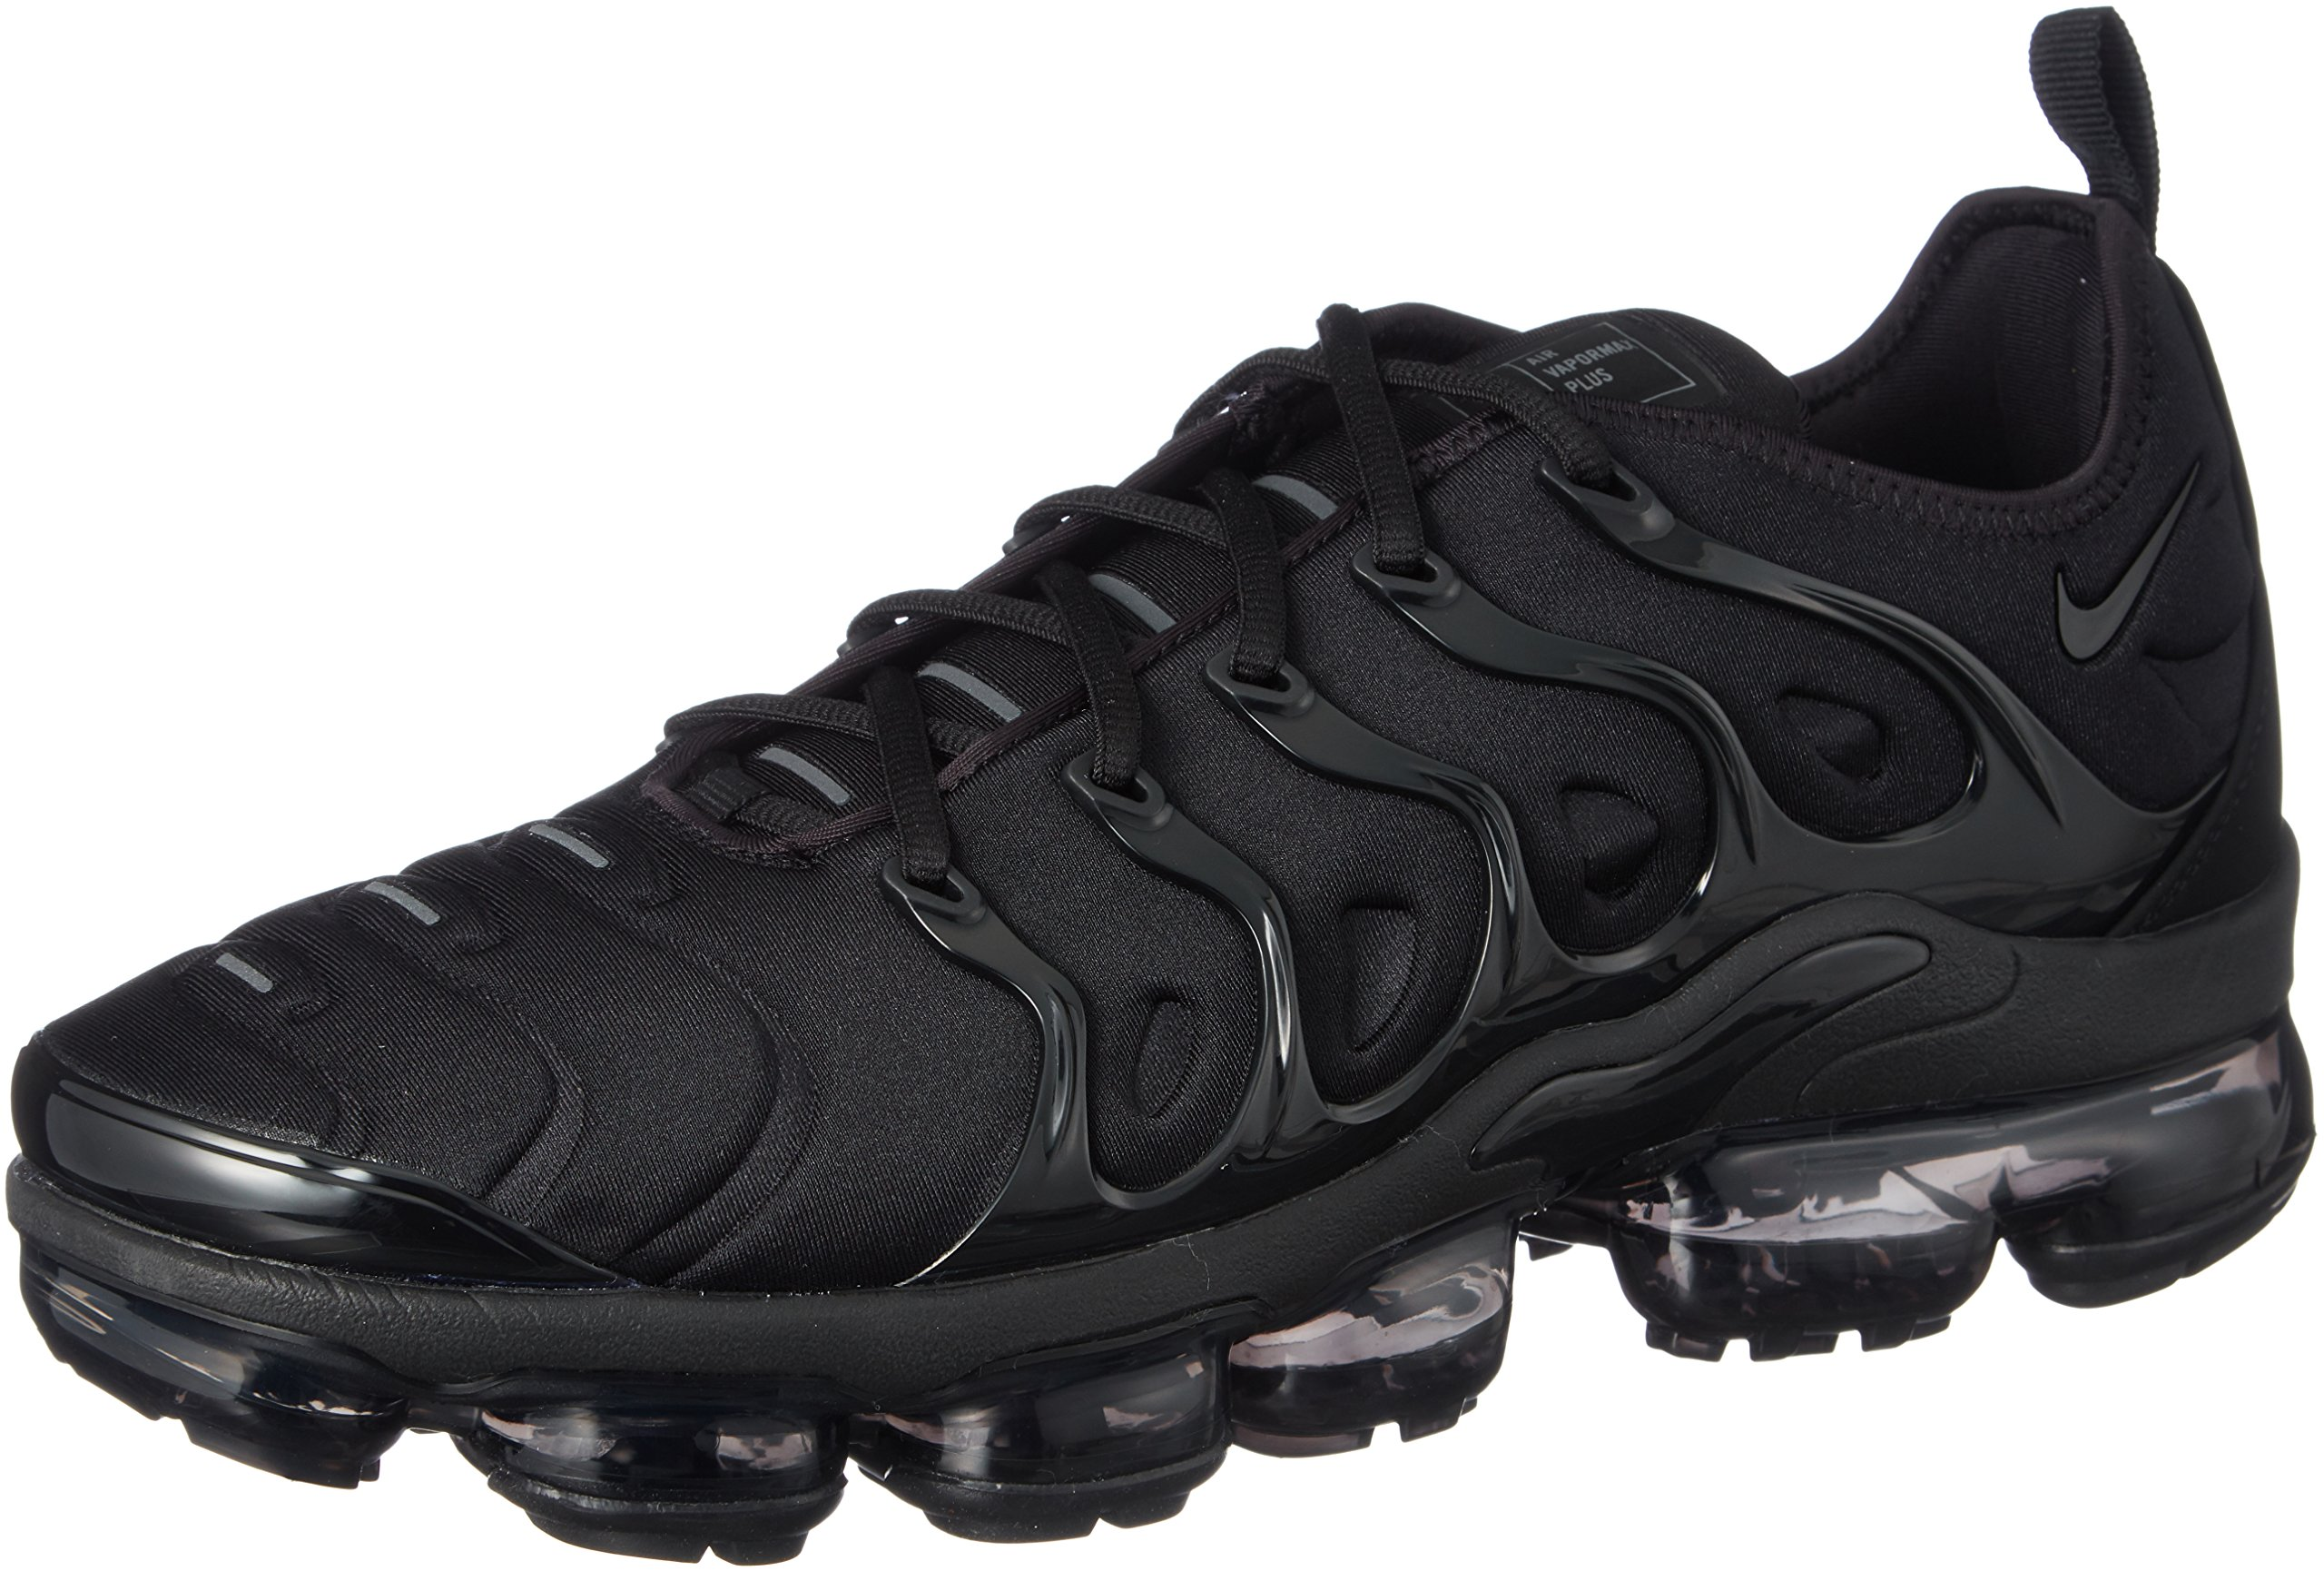 a27ae86449b Galleon - NIKE Air Vapormax Plus 924453-004 Triple Black Dark Grey Men s  Running Shoes (10)